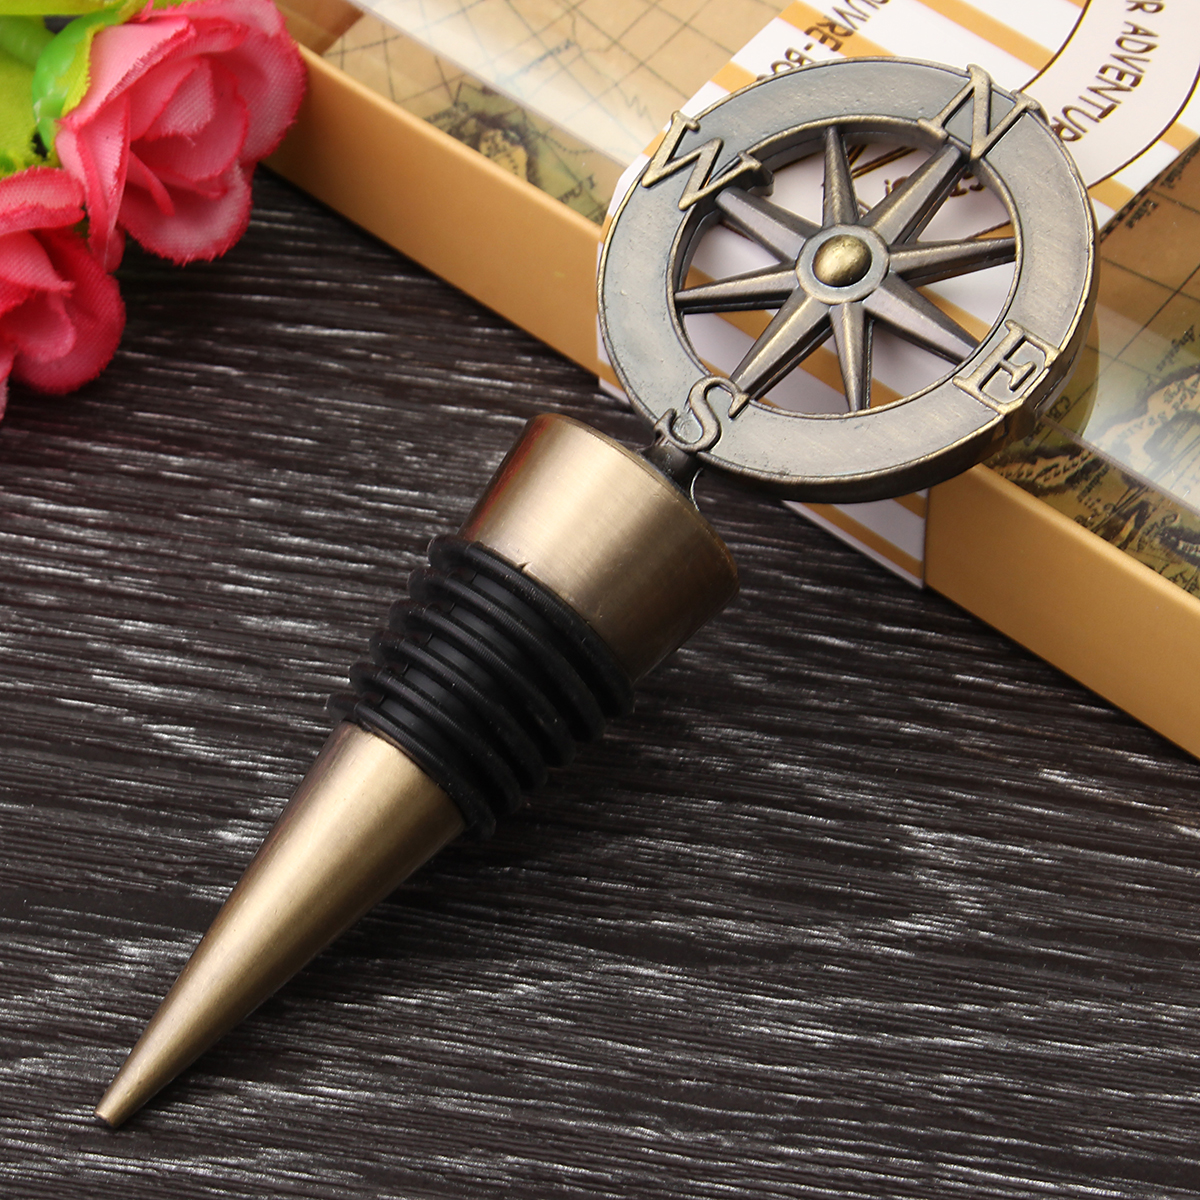 Golden Compass Wine Stopper Wedding Favors Gifts Wine Bottle Opener Bar Tools Souvenirs